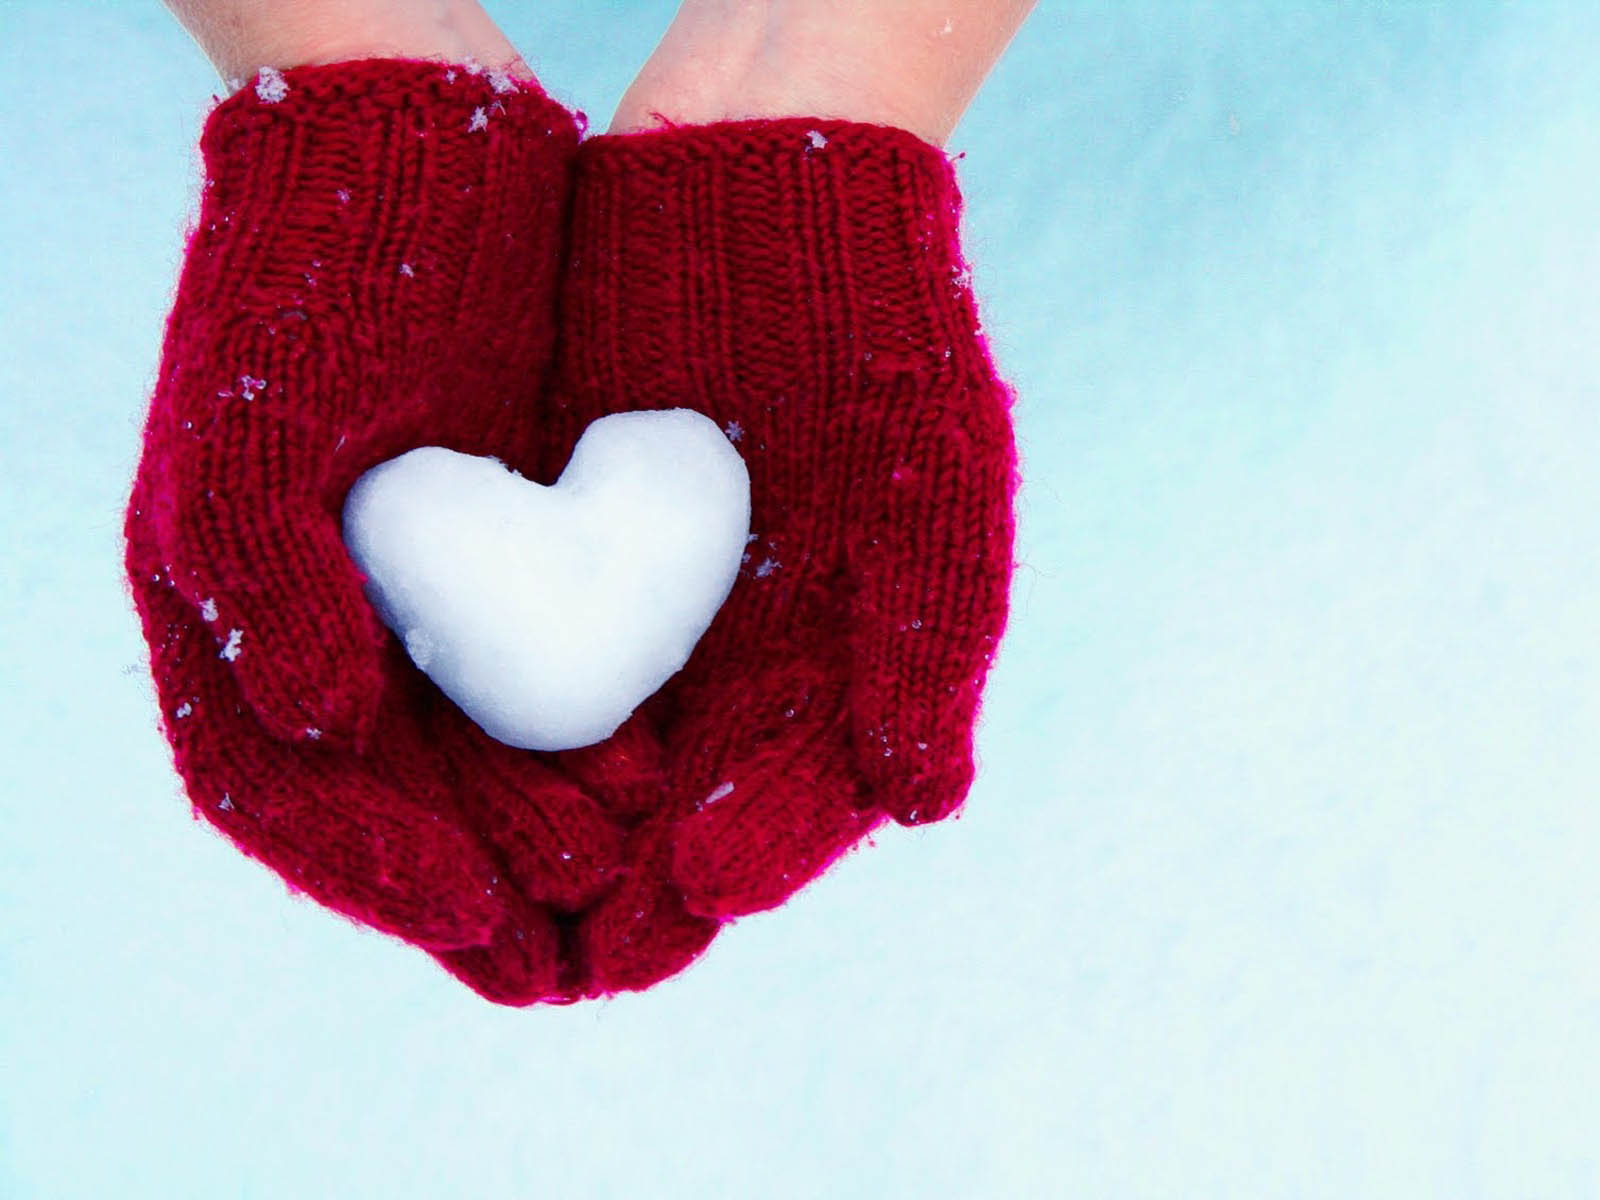 Love Hands Wallpapers Backgrounds Paos Images and Pictures for 1600x1200